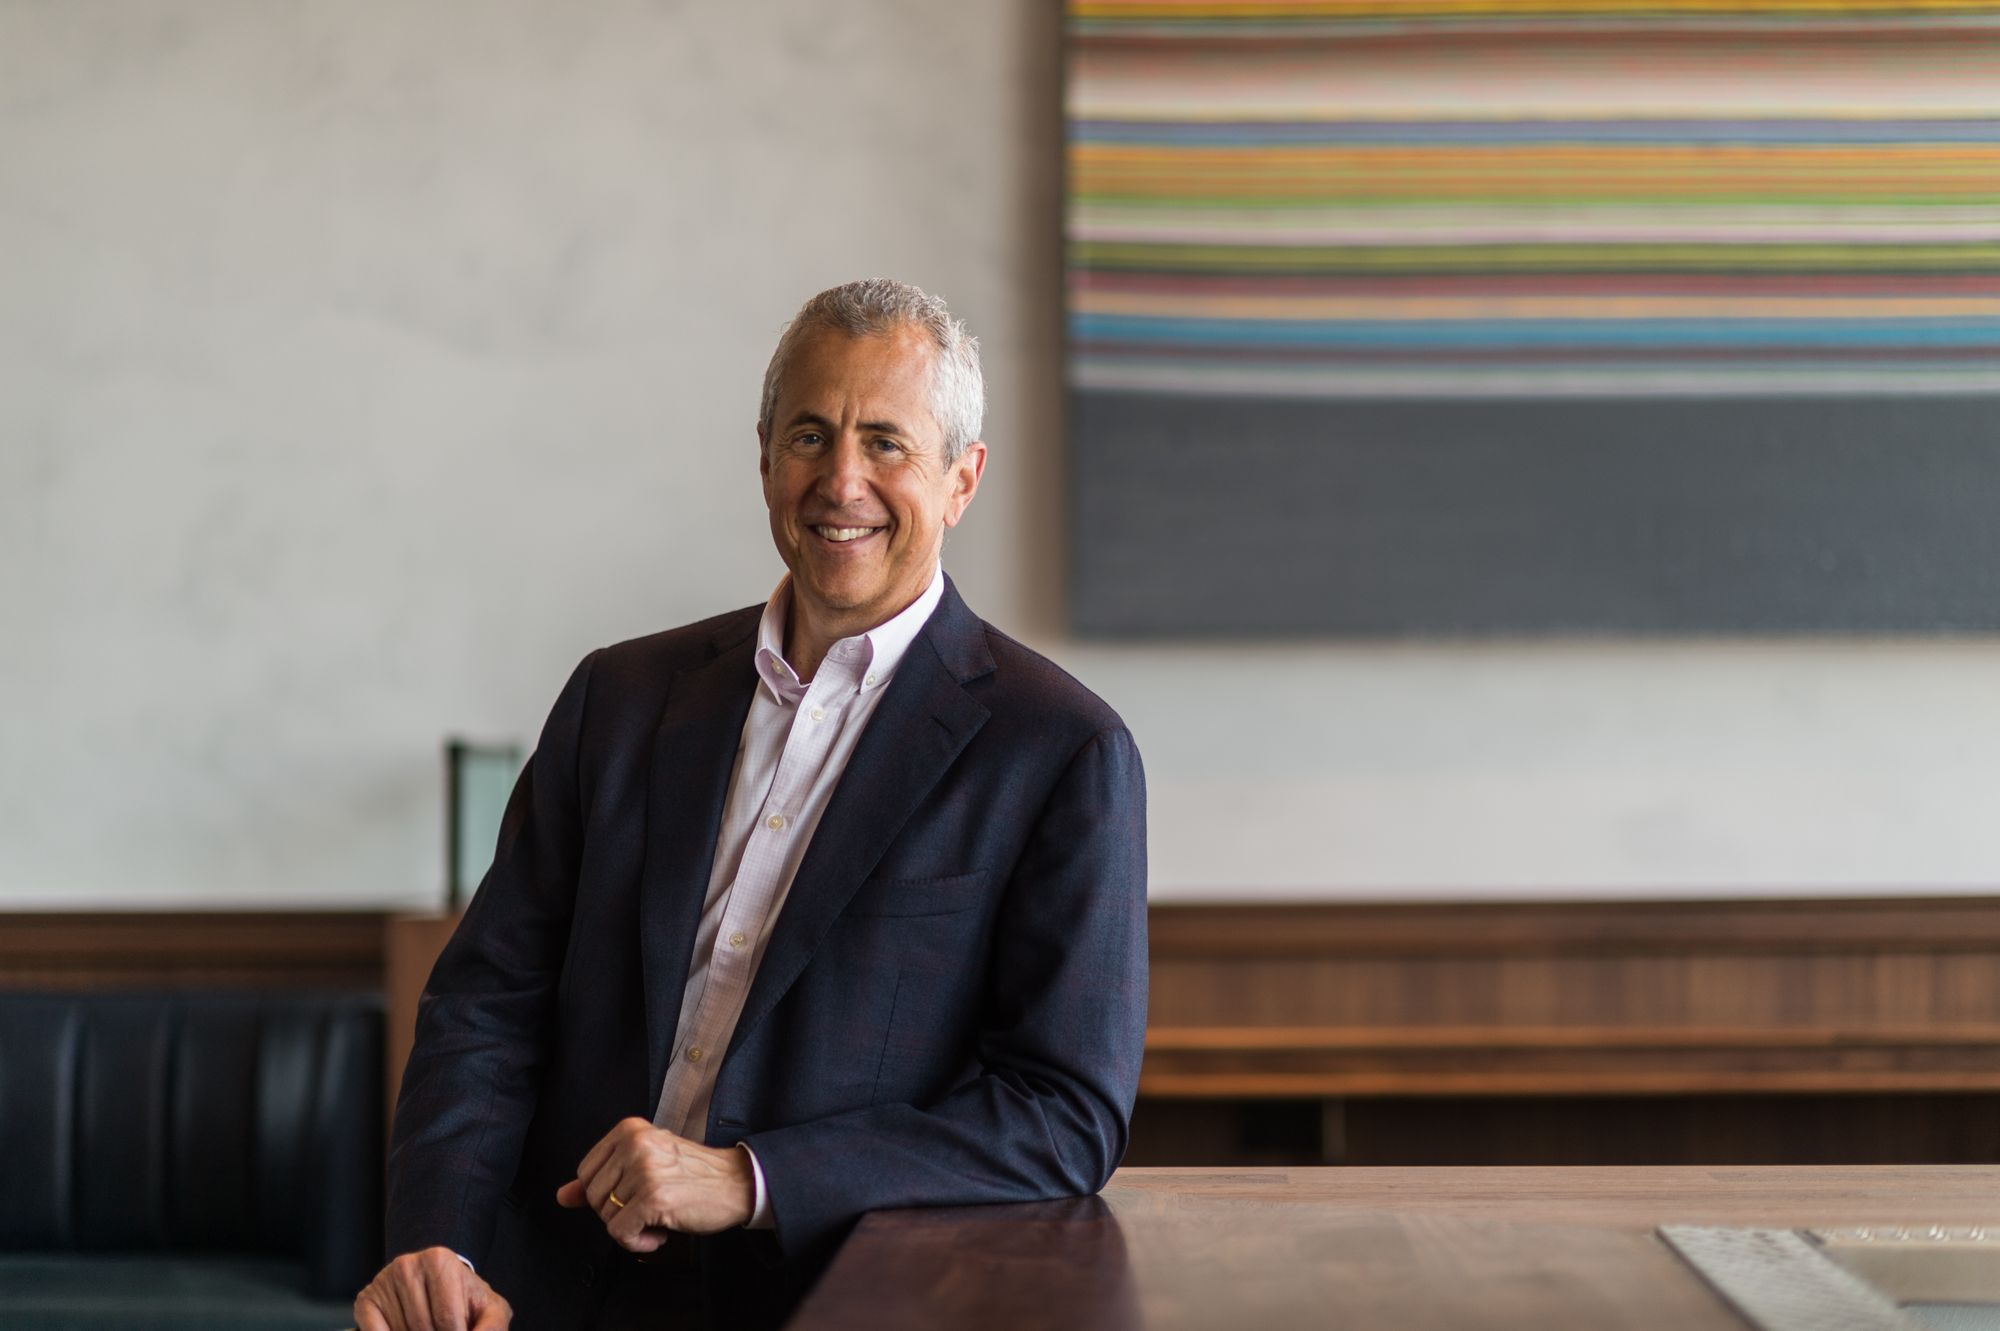 Danny Meyer on How to Hire the Right People For Your Restaurant